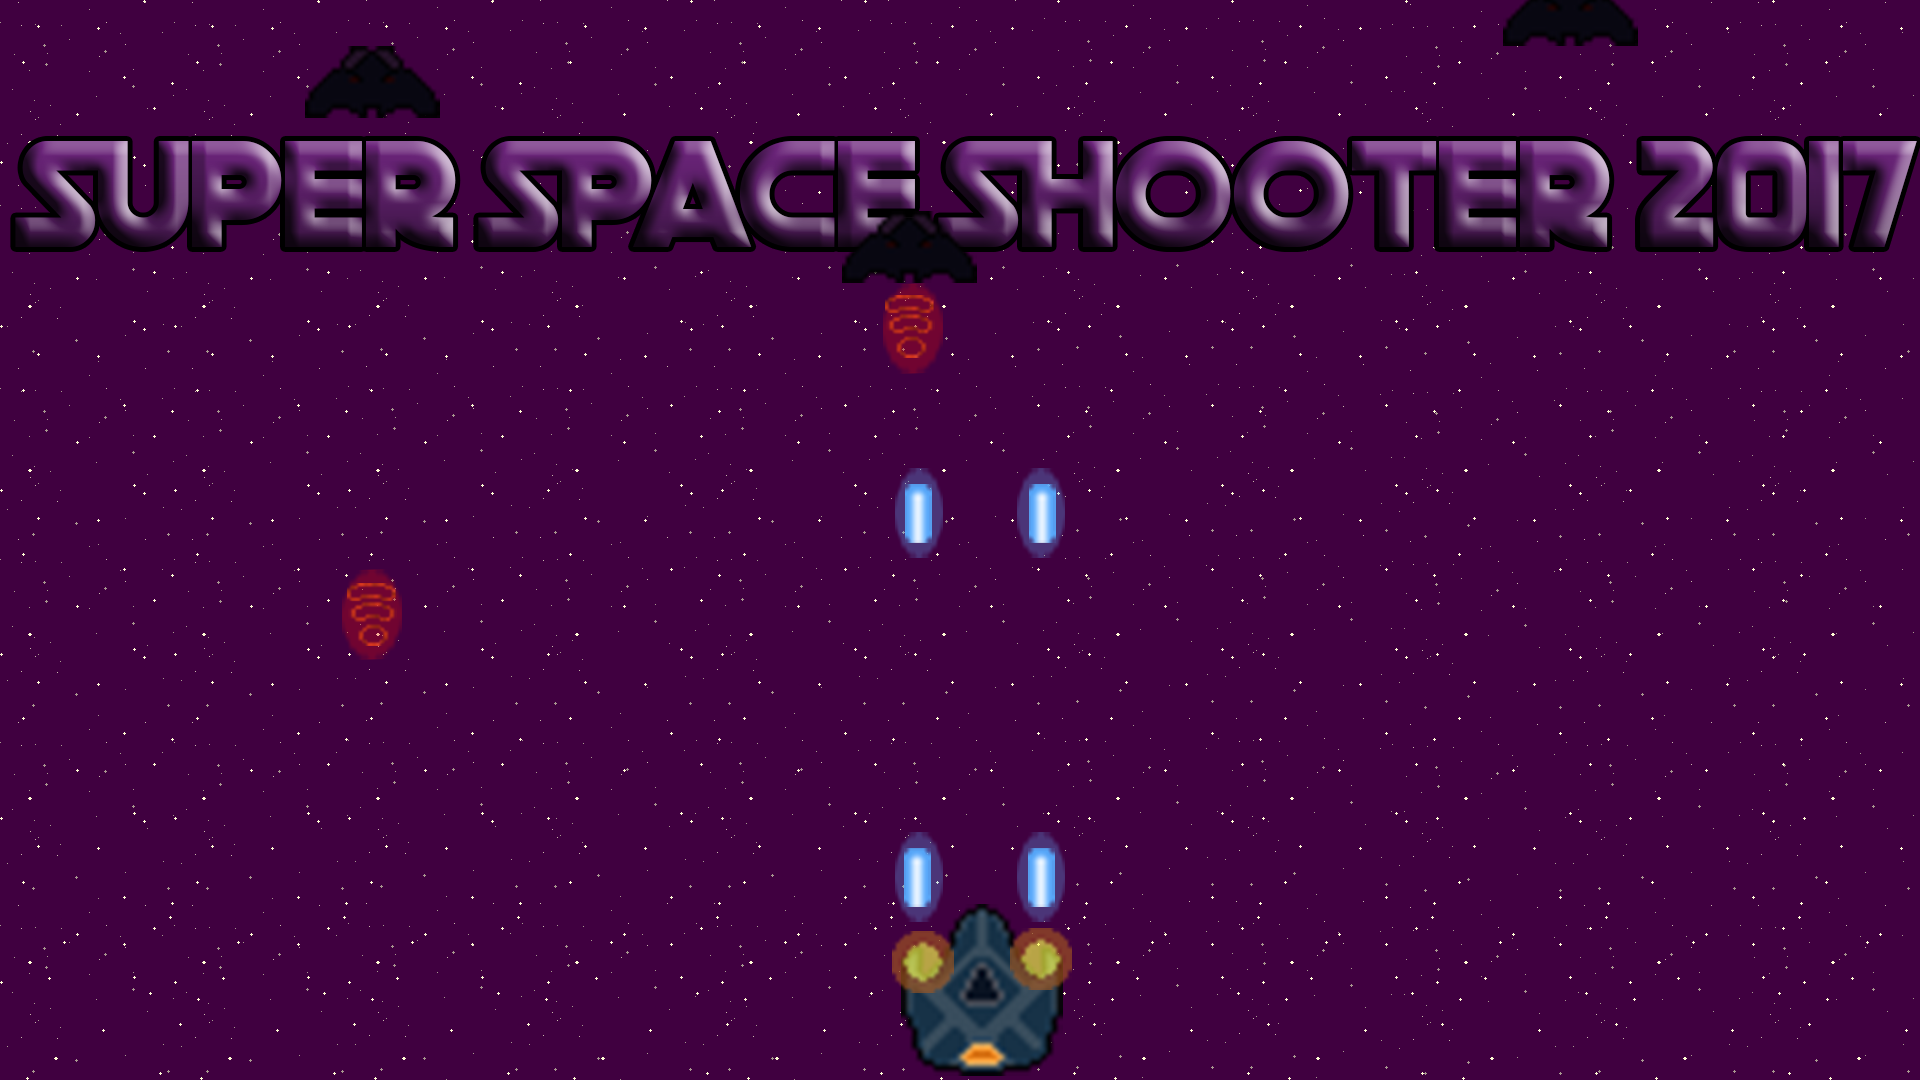 Super Space Shooter 2017